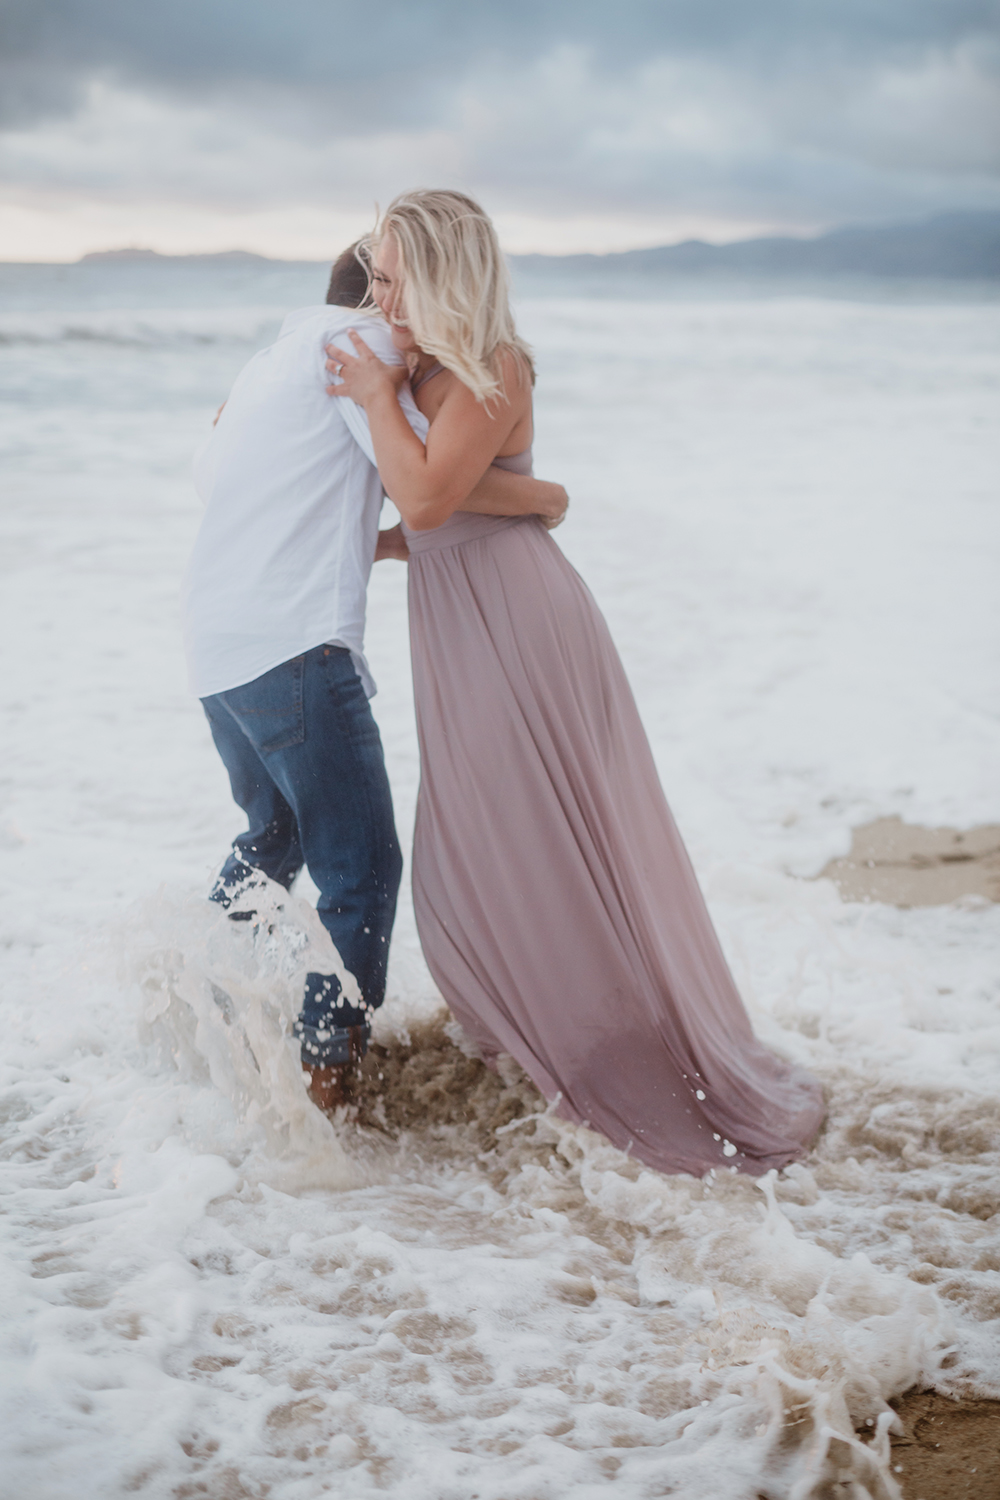 engagement-andrew-cori-4-29-18-126.jpghalf-moon-bay-beach-engagement-photos-c-a-48.html